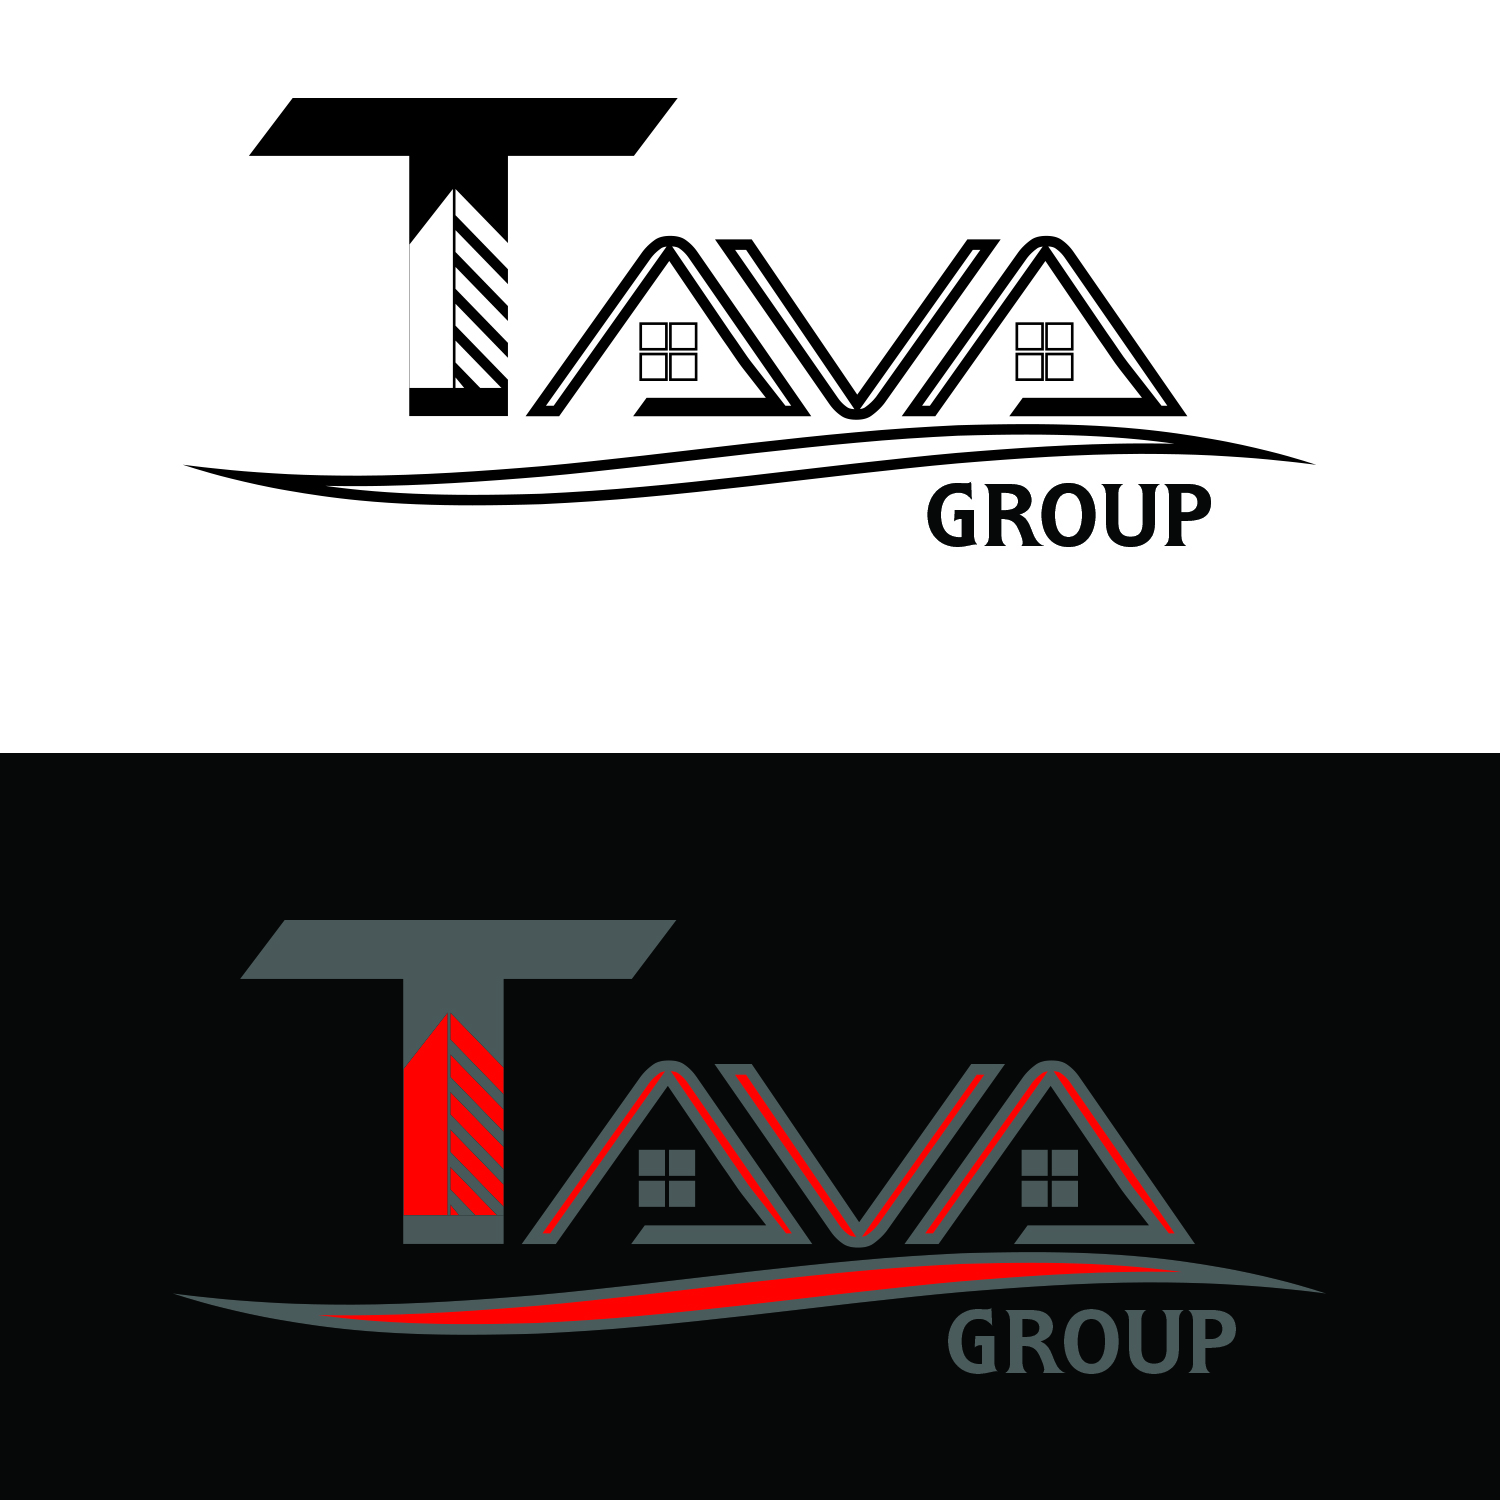 Logo Design by Umair ahmed Iqbal - Entry No. 184 in the Logo Design Contest Creative Logo Design for Tava Group.